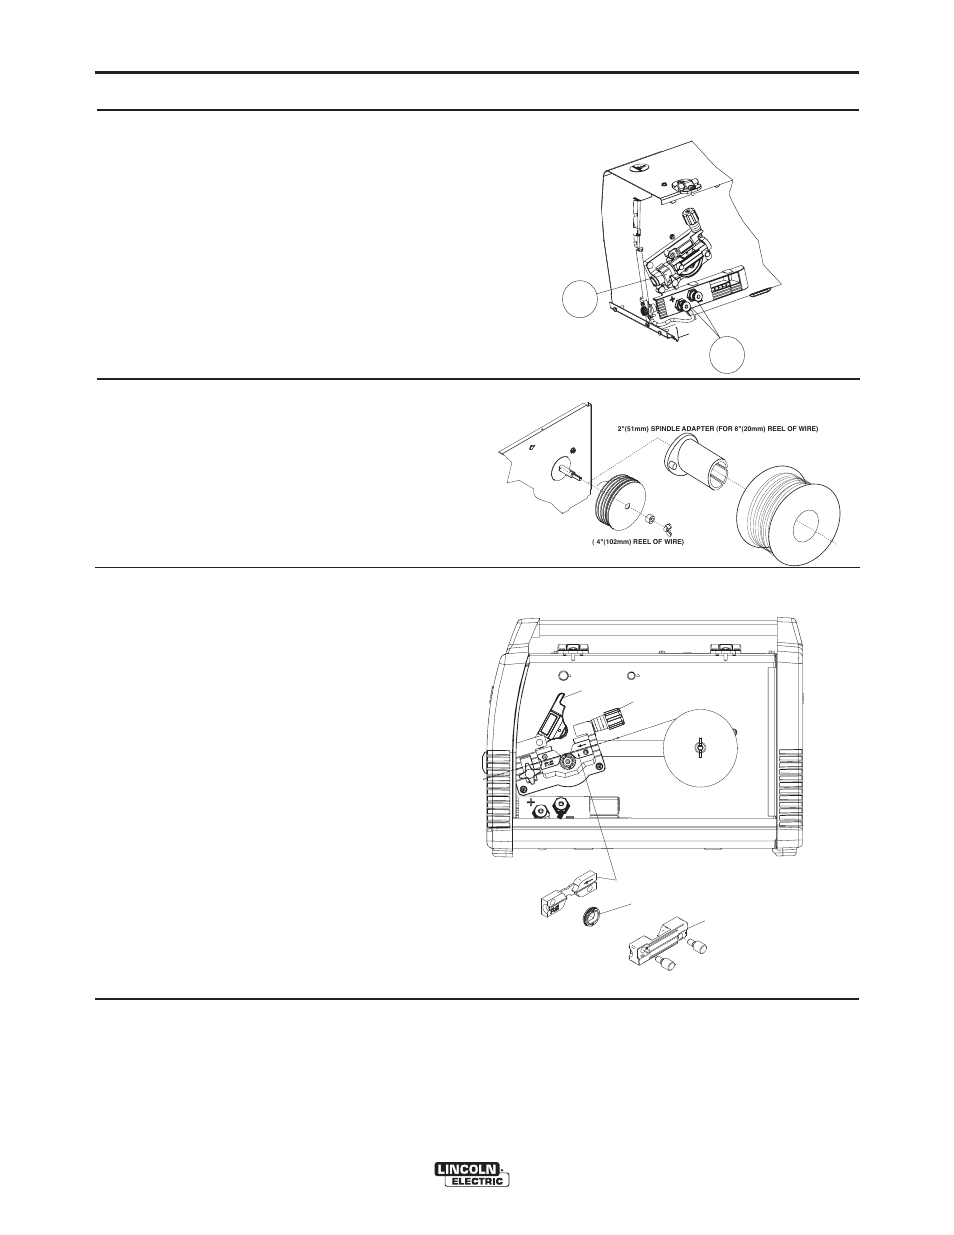 Operation Lincoln Electric Im890 Power Mig 140 180 User Manual Welding Torch Diagram Page 14 56